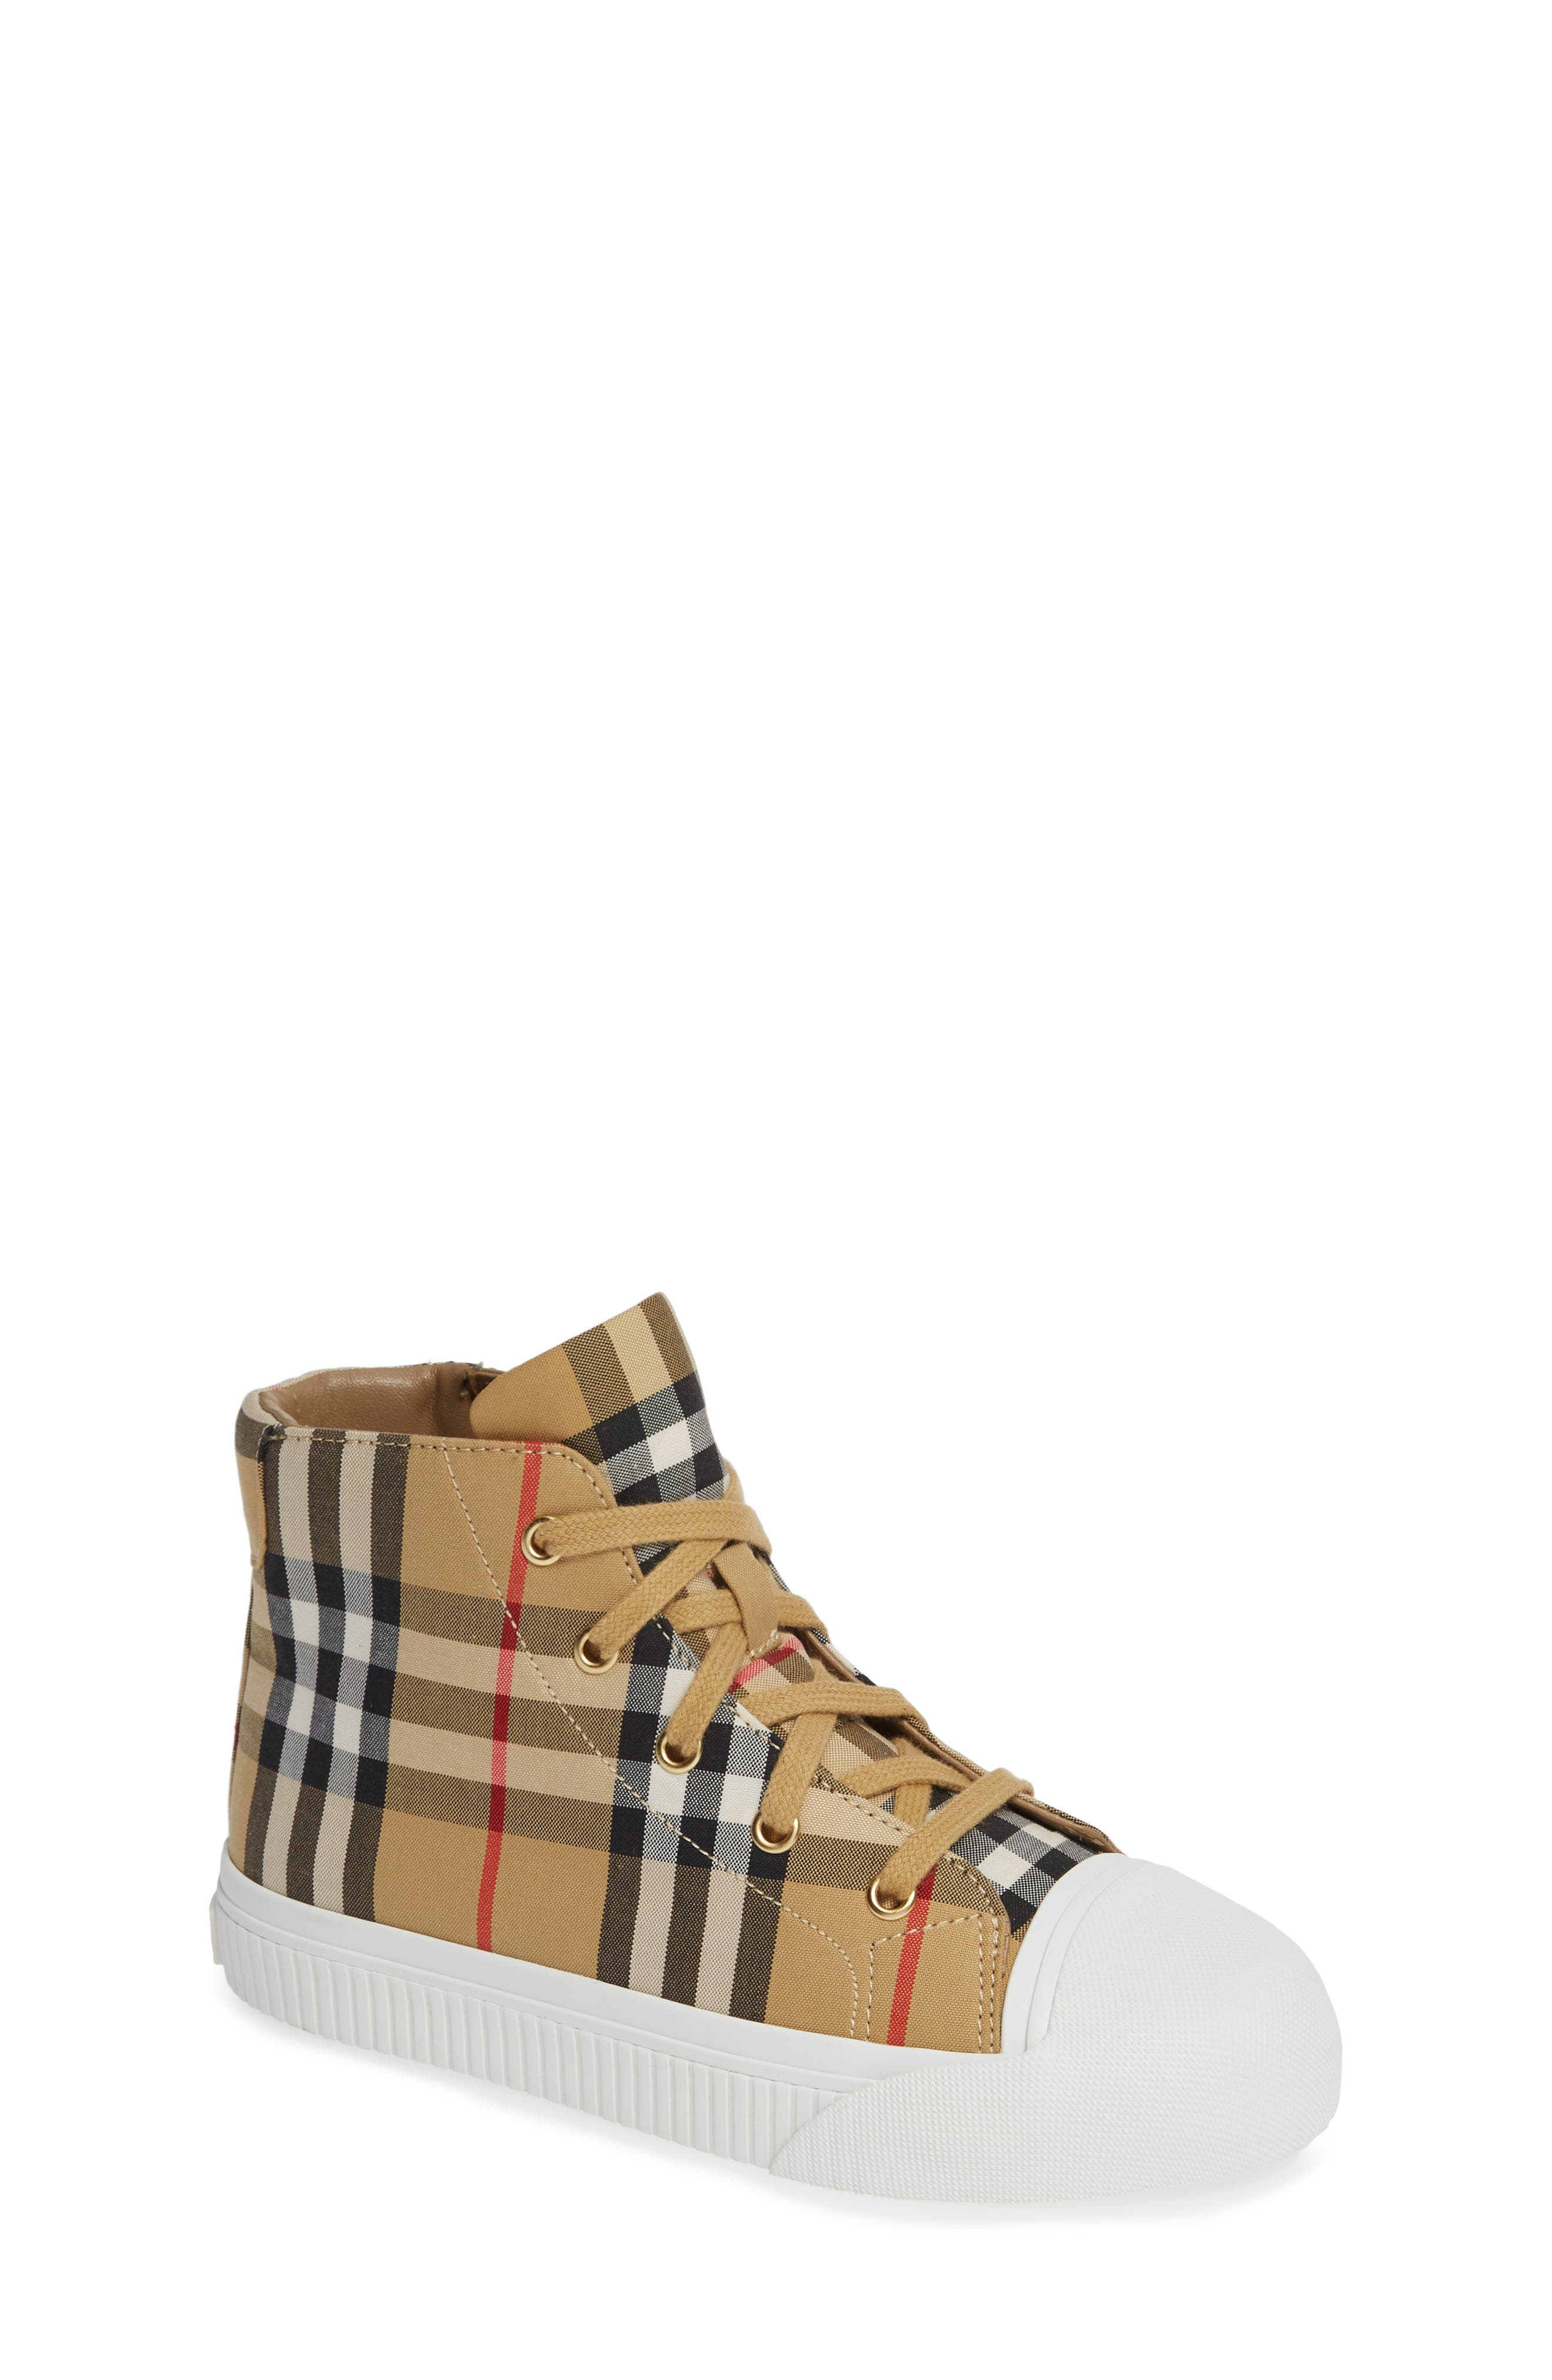 BURBERRY, Belford High-Top Sneaker, Main thumbnail 1, color, ANTIQUE YELLOW/ OPTIC WHITE